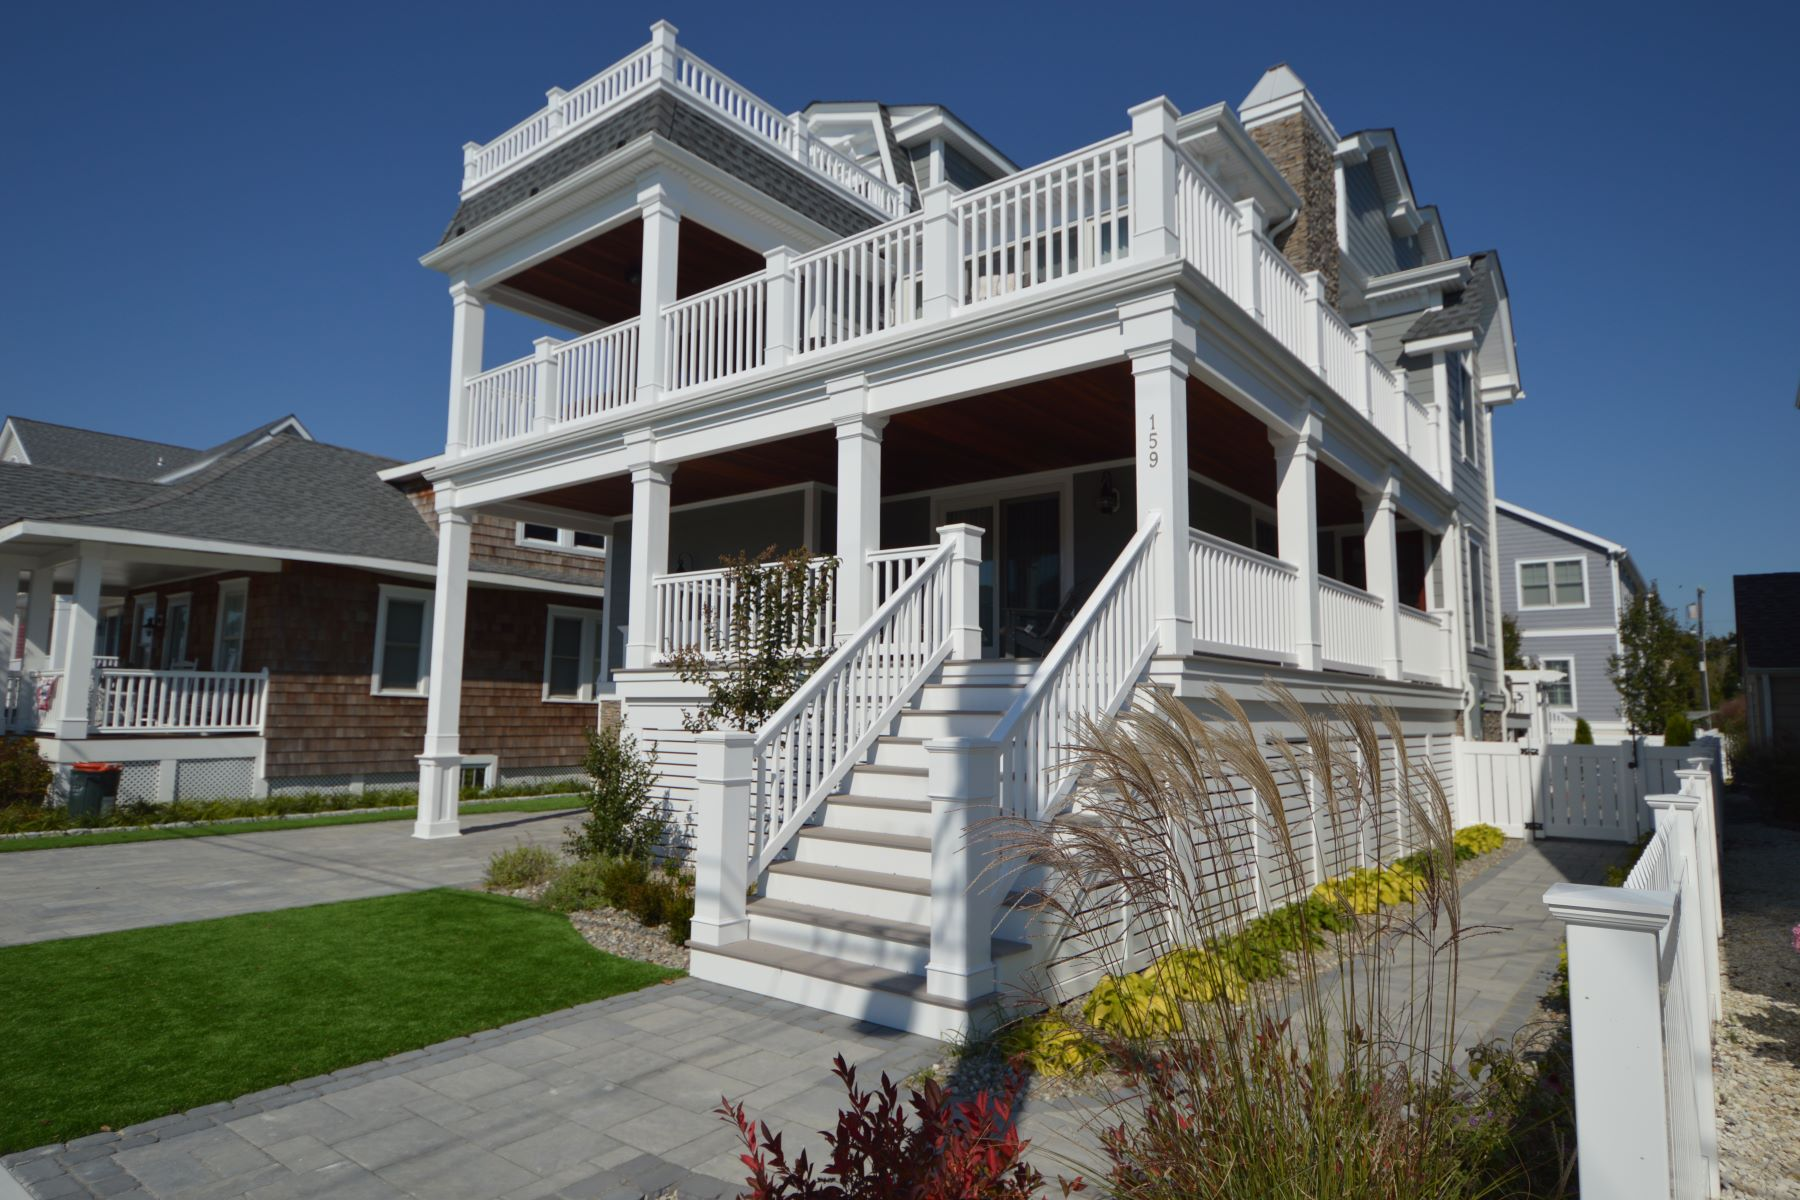 Single Family Home for Rent at Expansive, Prime Location Home 159 26th Street, Avalon, New Jersey 08202 United States